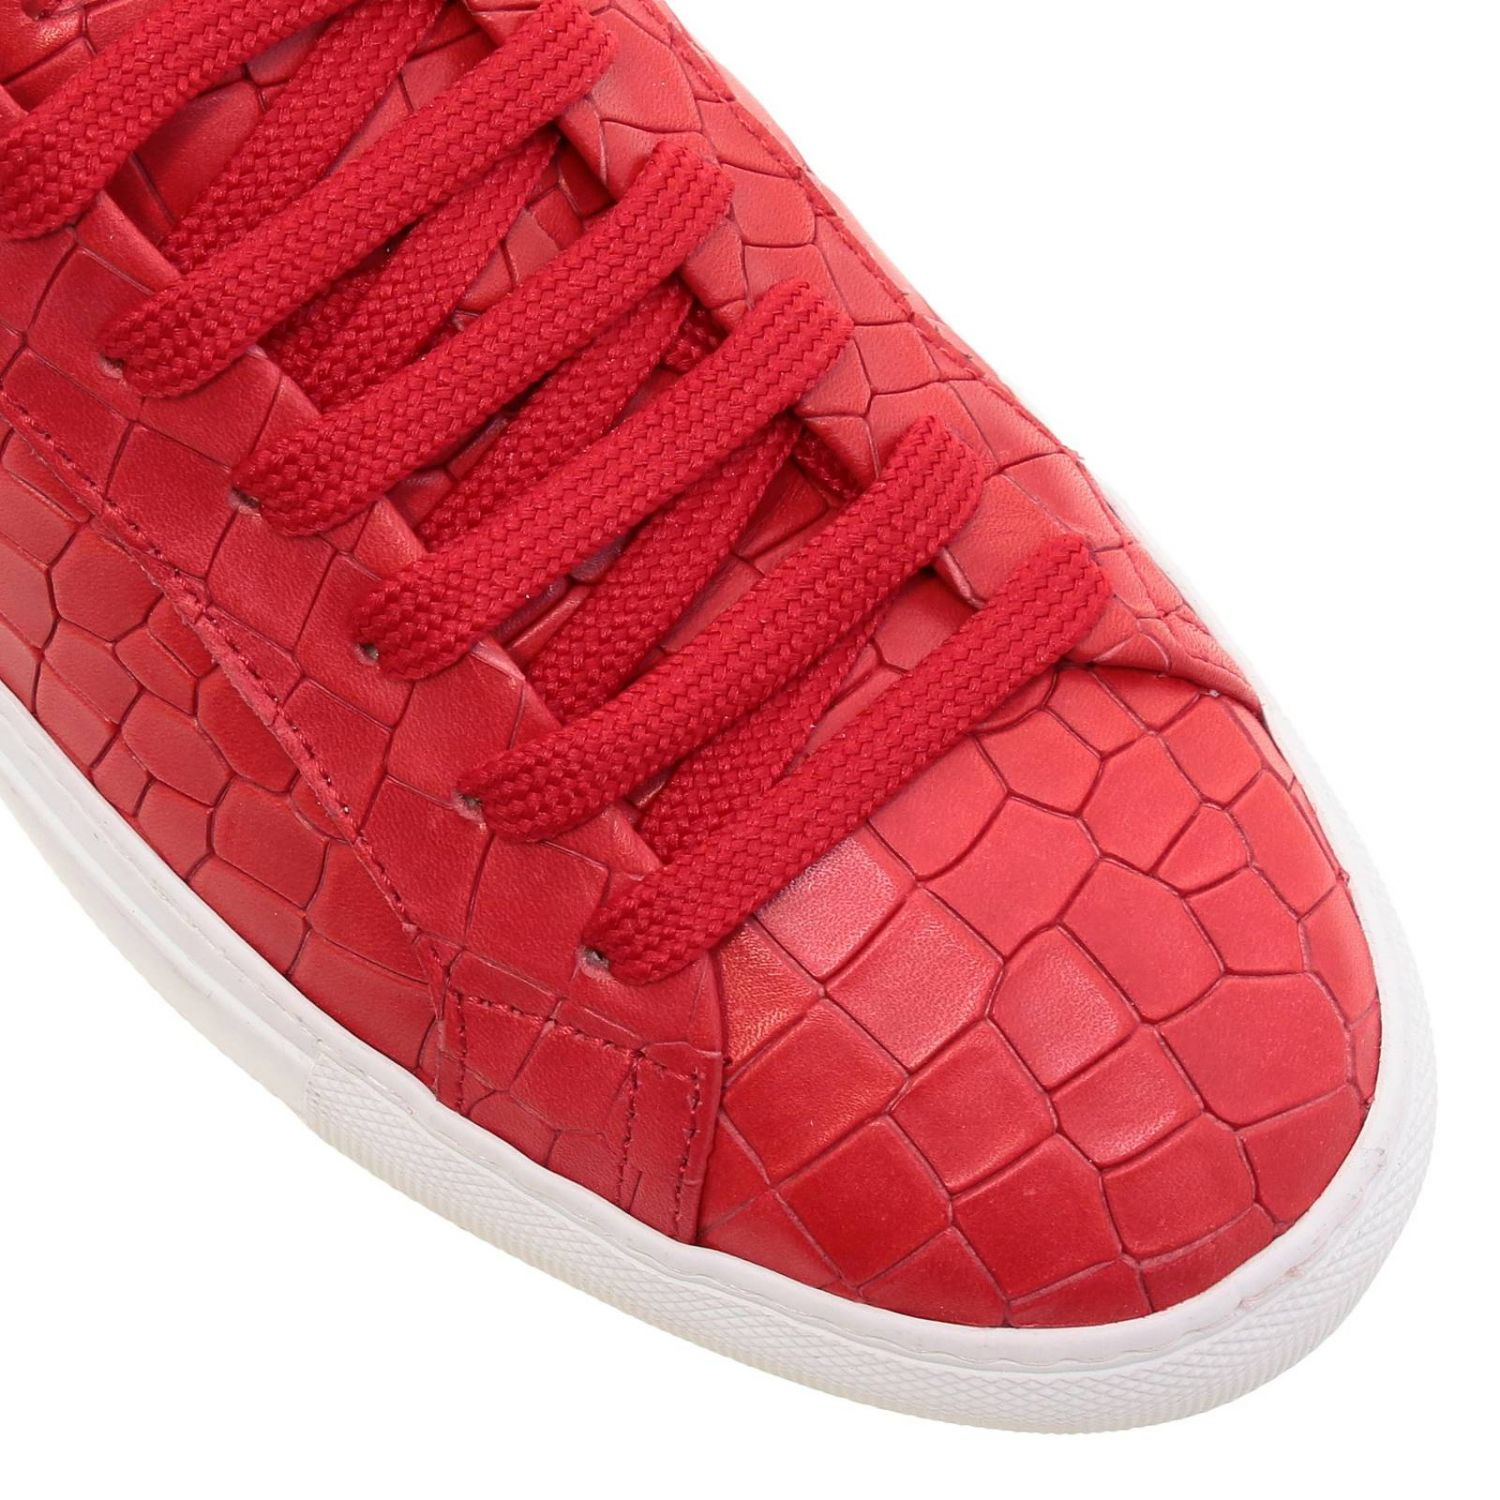 Chaussures homme Hide & Jack rouge 3